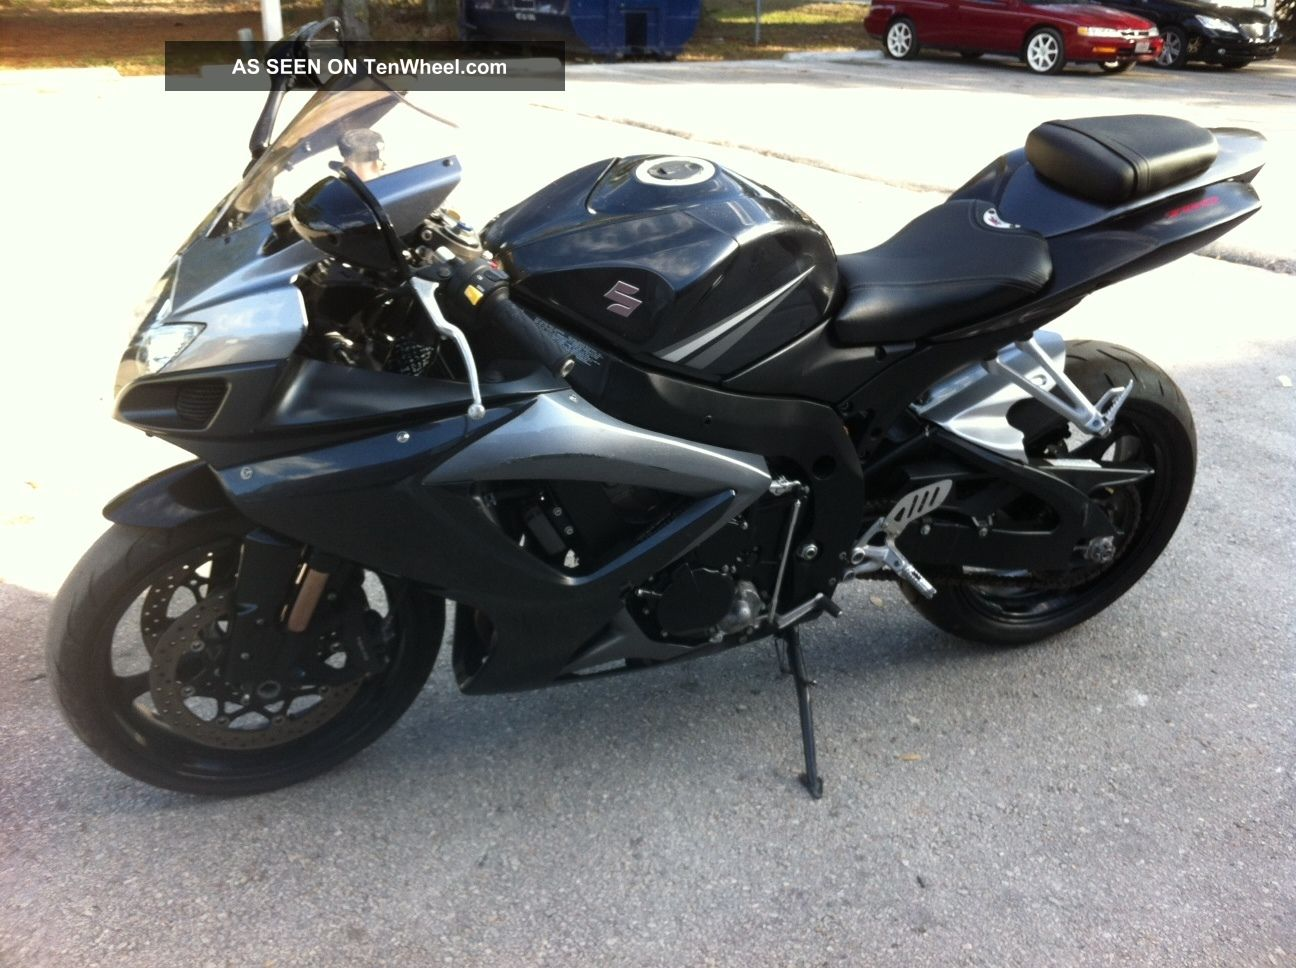 2007 suzuki gsxr 750 two brothers carbon fiber exhuast 3 gsx r750 gixxer. Black Bedroom Furniture Sets. Home Design Ideas